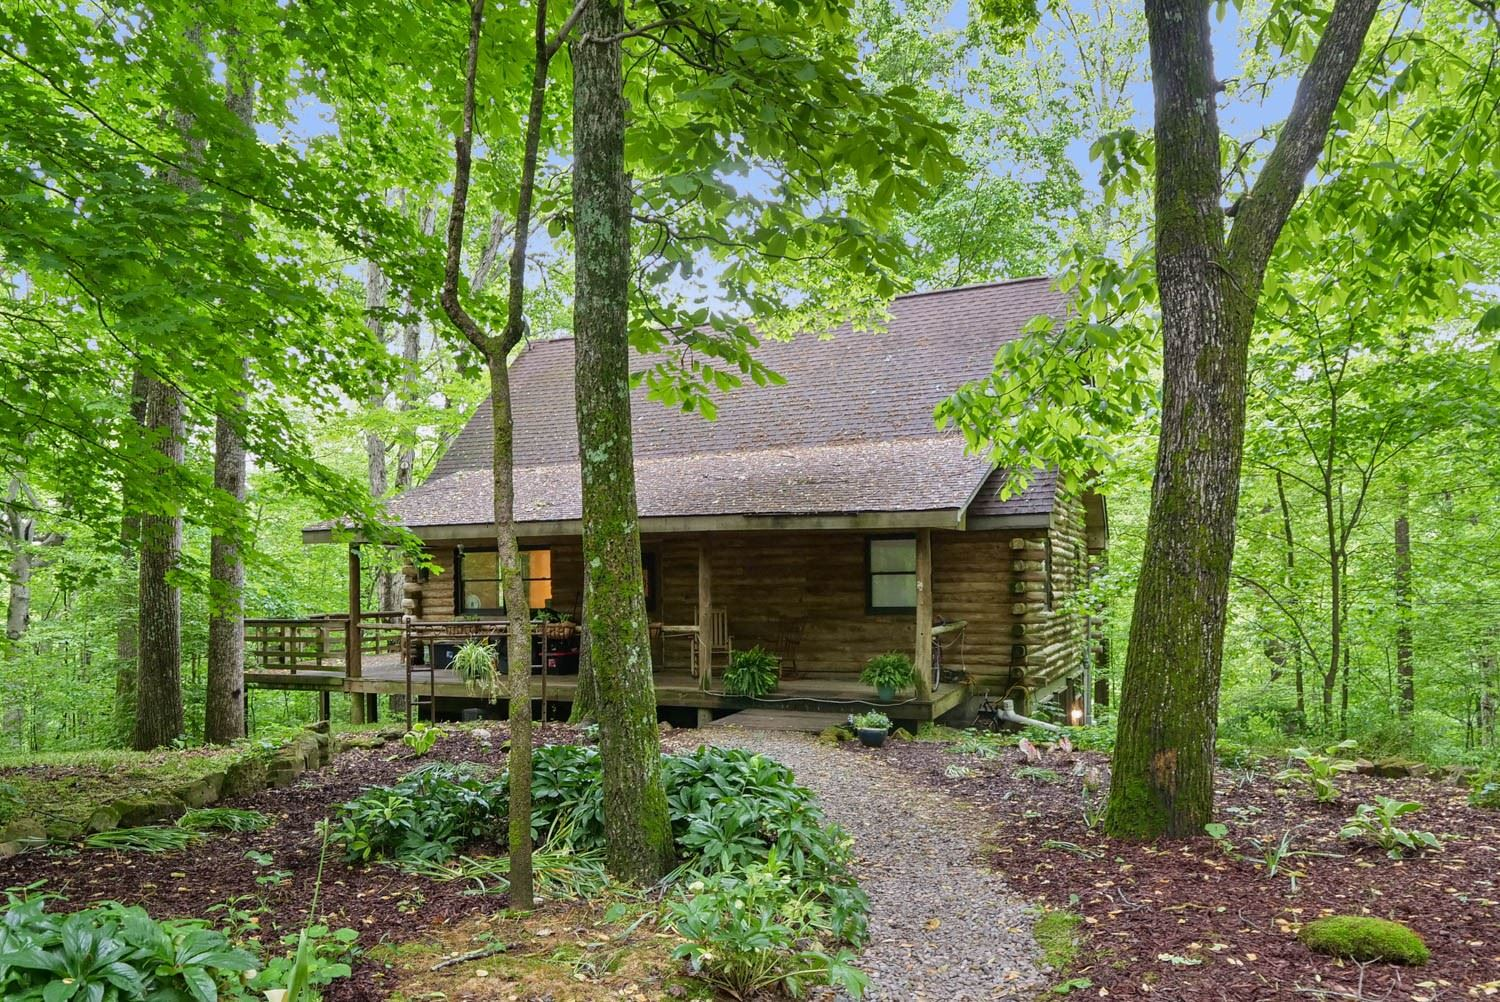 Photo of 5216 Waddell Hollow Rd, Franklin, TN 37064 (MLS # 2253369)